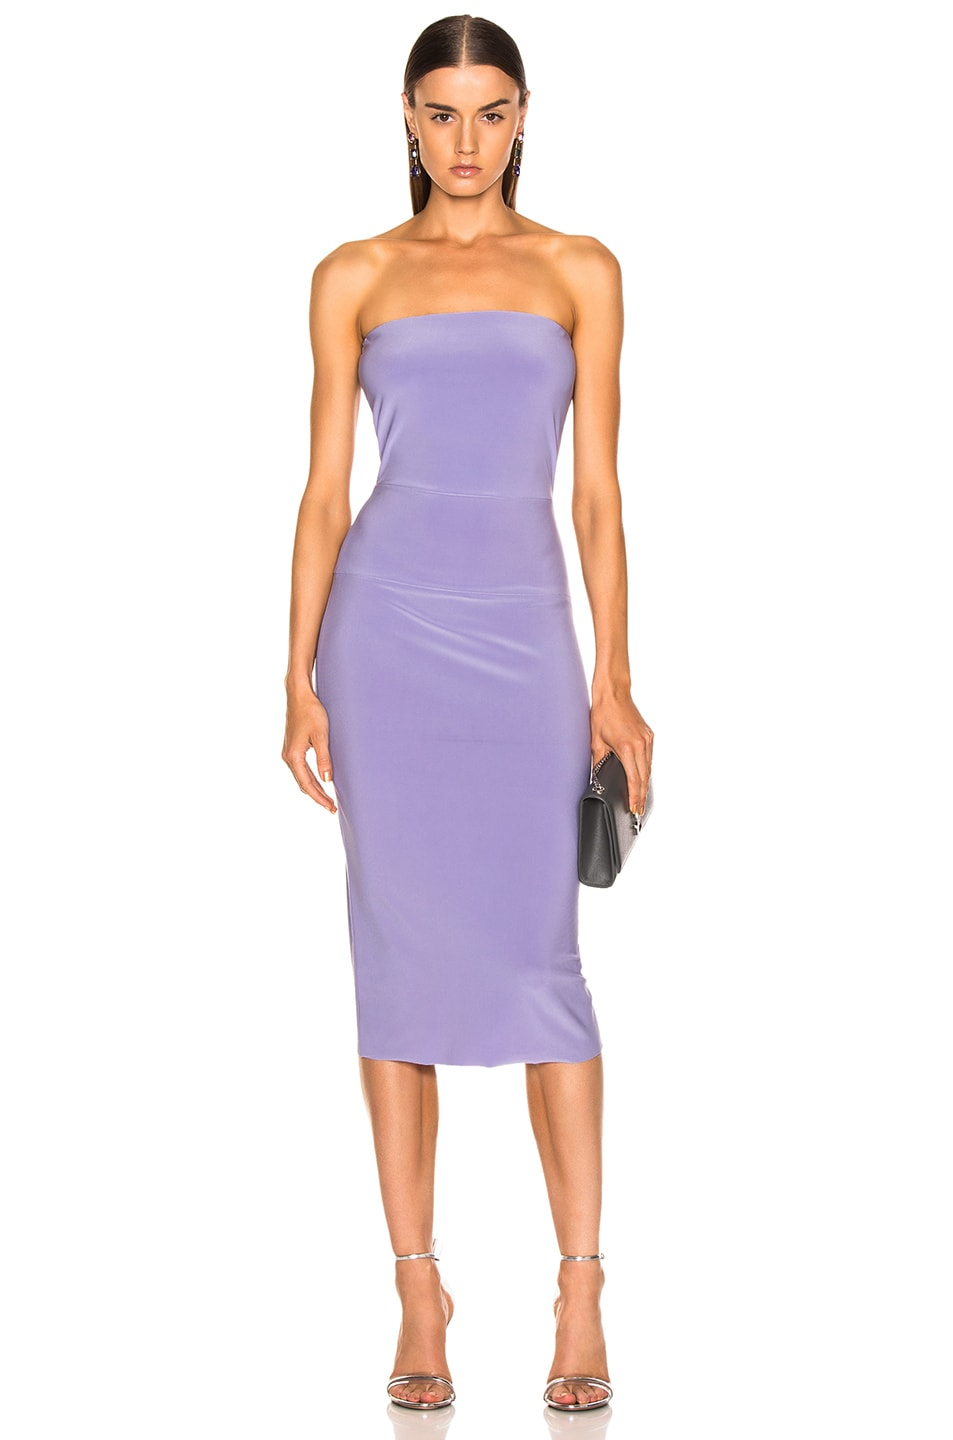 Image 1 of Norma Kamali for FWRD Strapless Dress in Violet